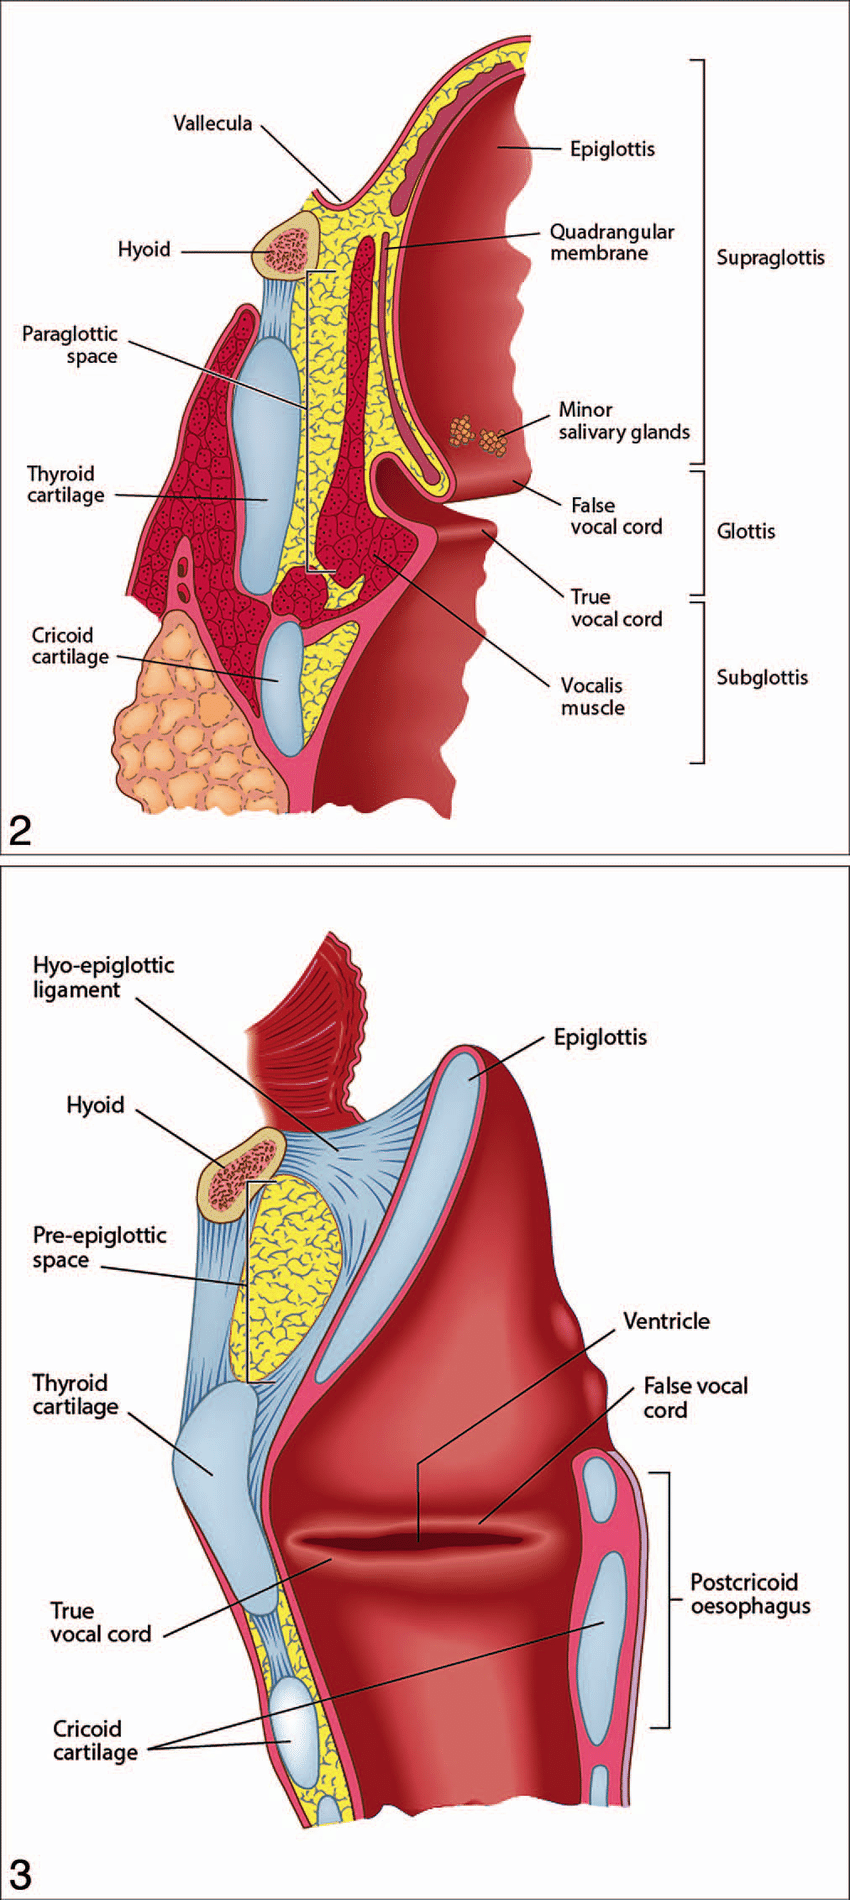 hight resolution of coronal section through the larynx to show the main anatomic structures the subsites and